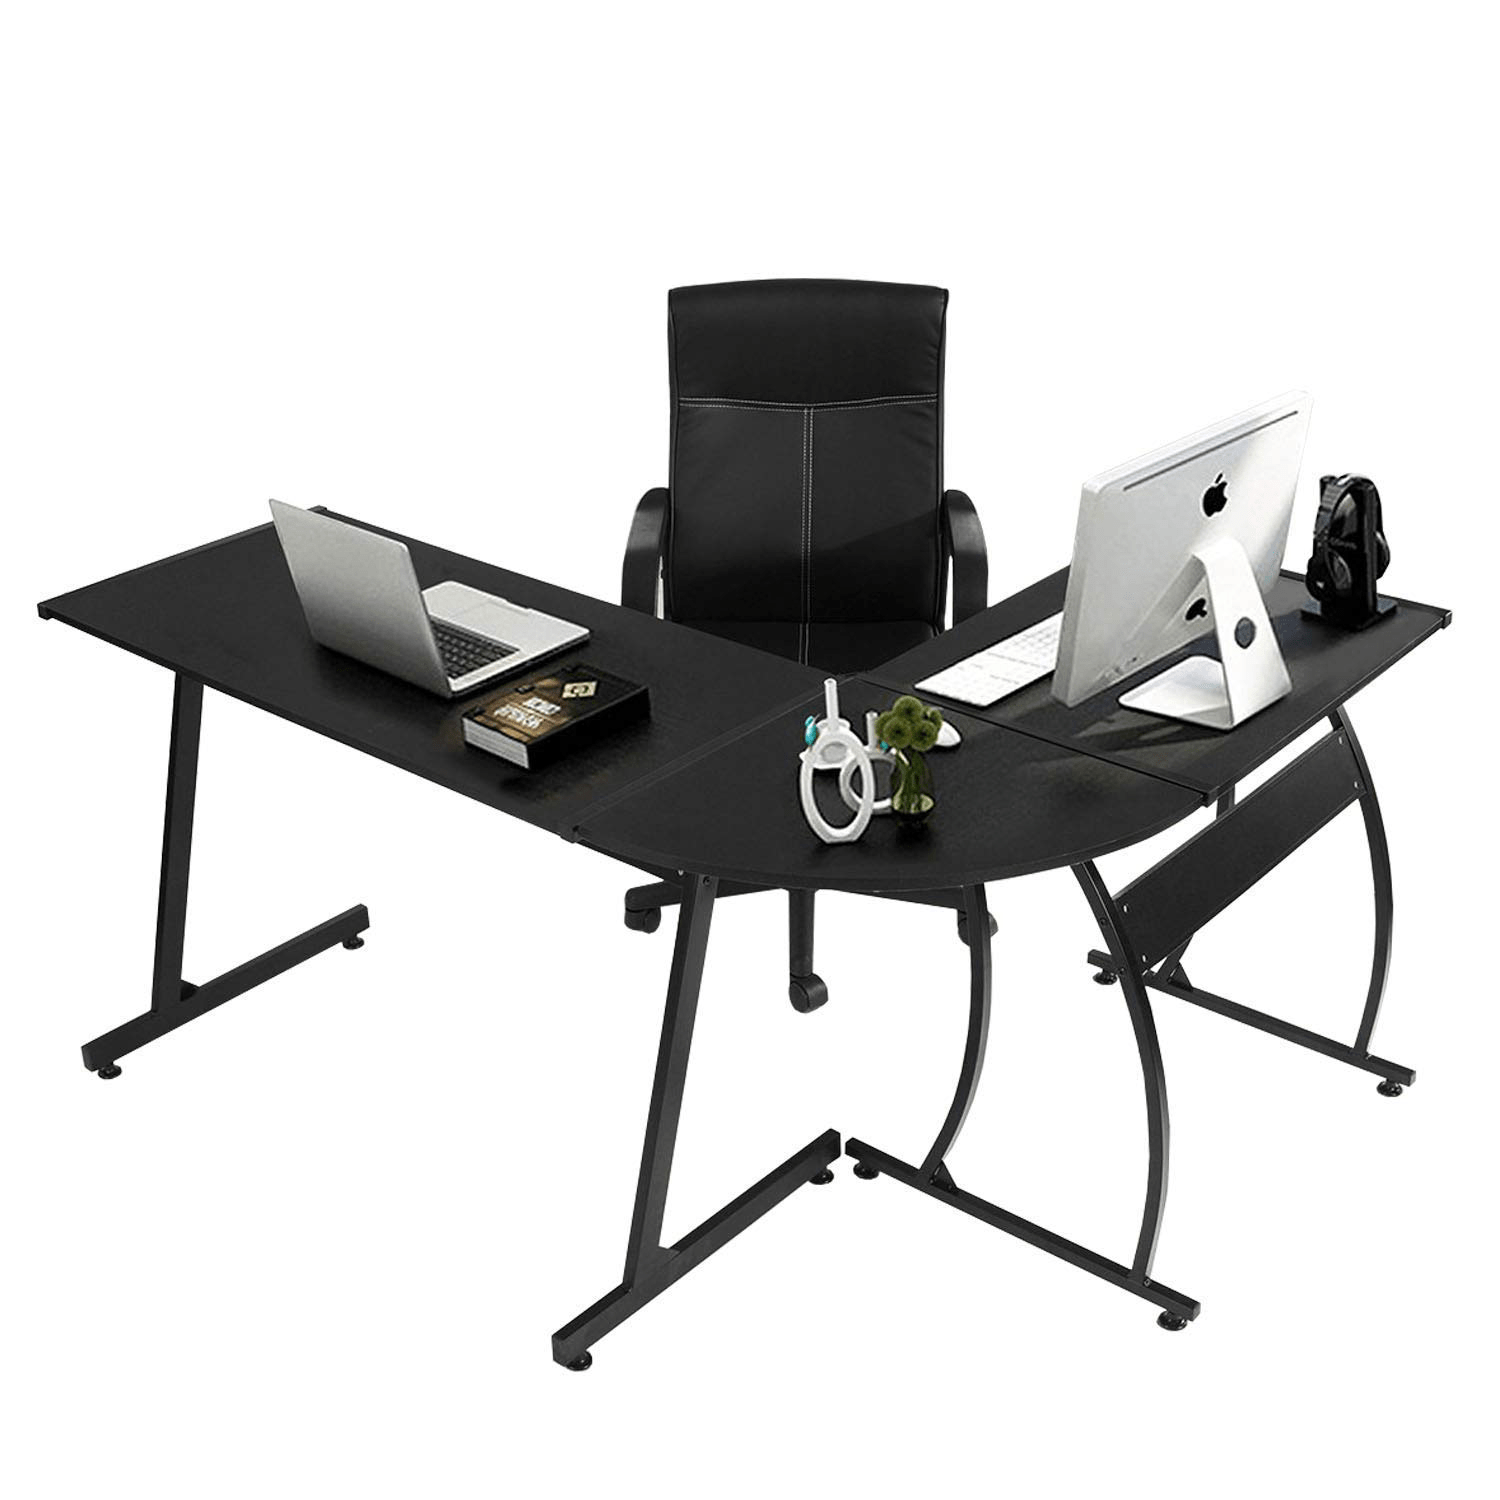 Best Computer Desk Available on Amazon